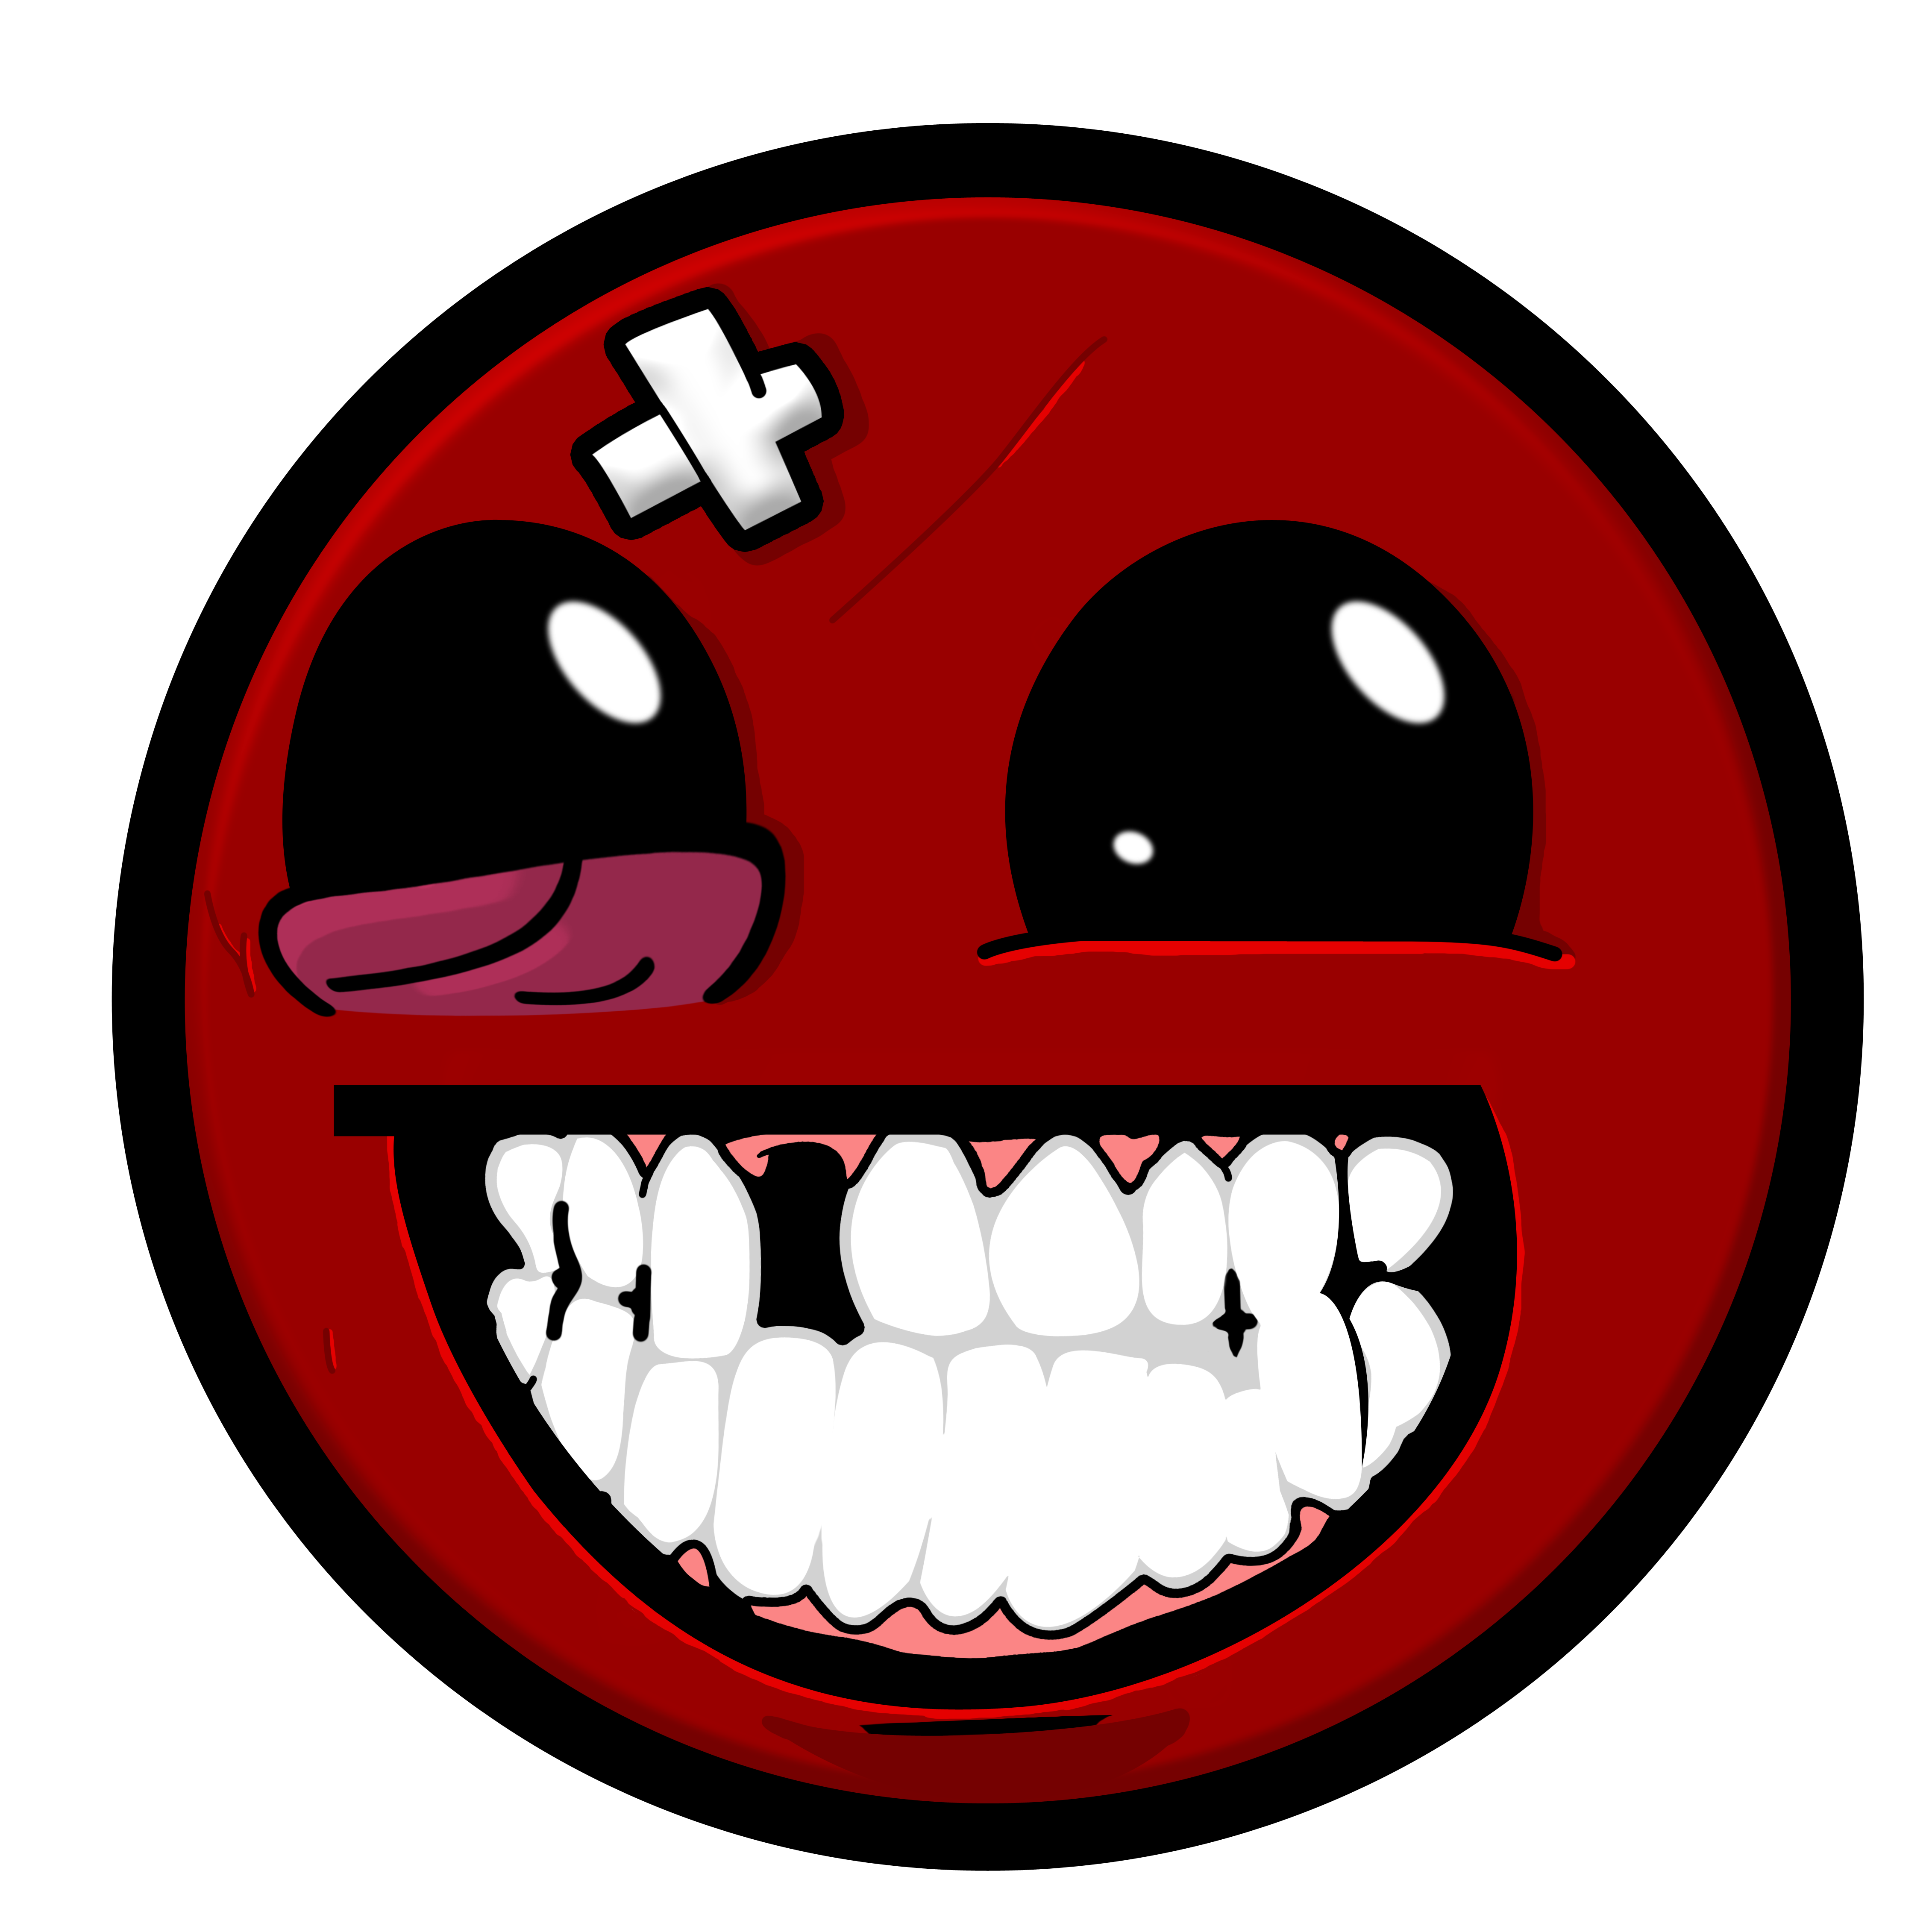 Funny smiley face png. Super meat boy awesome